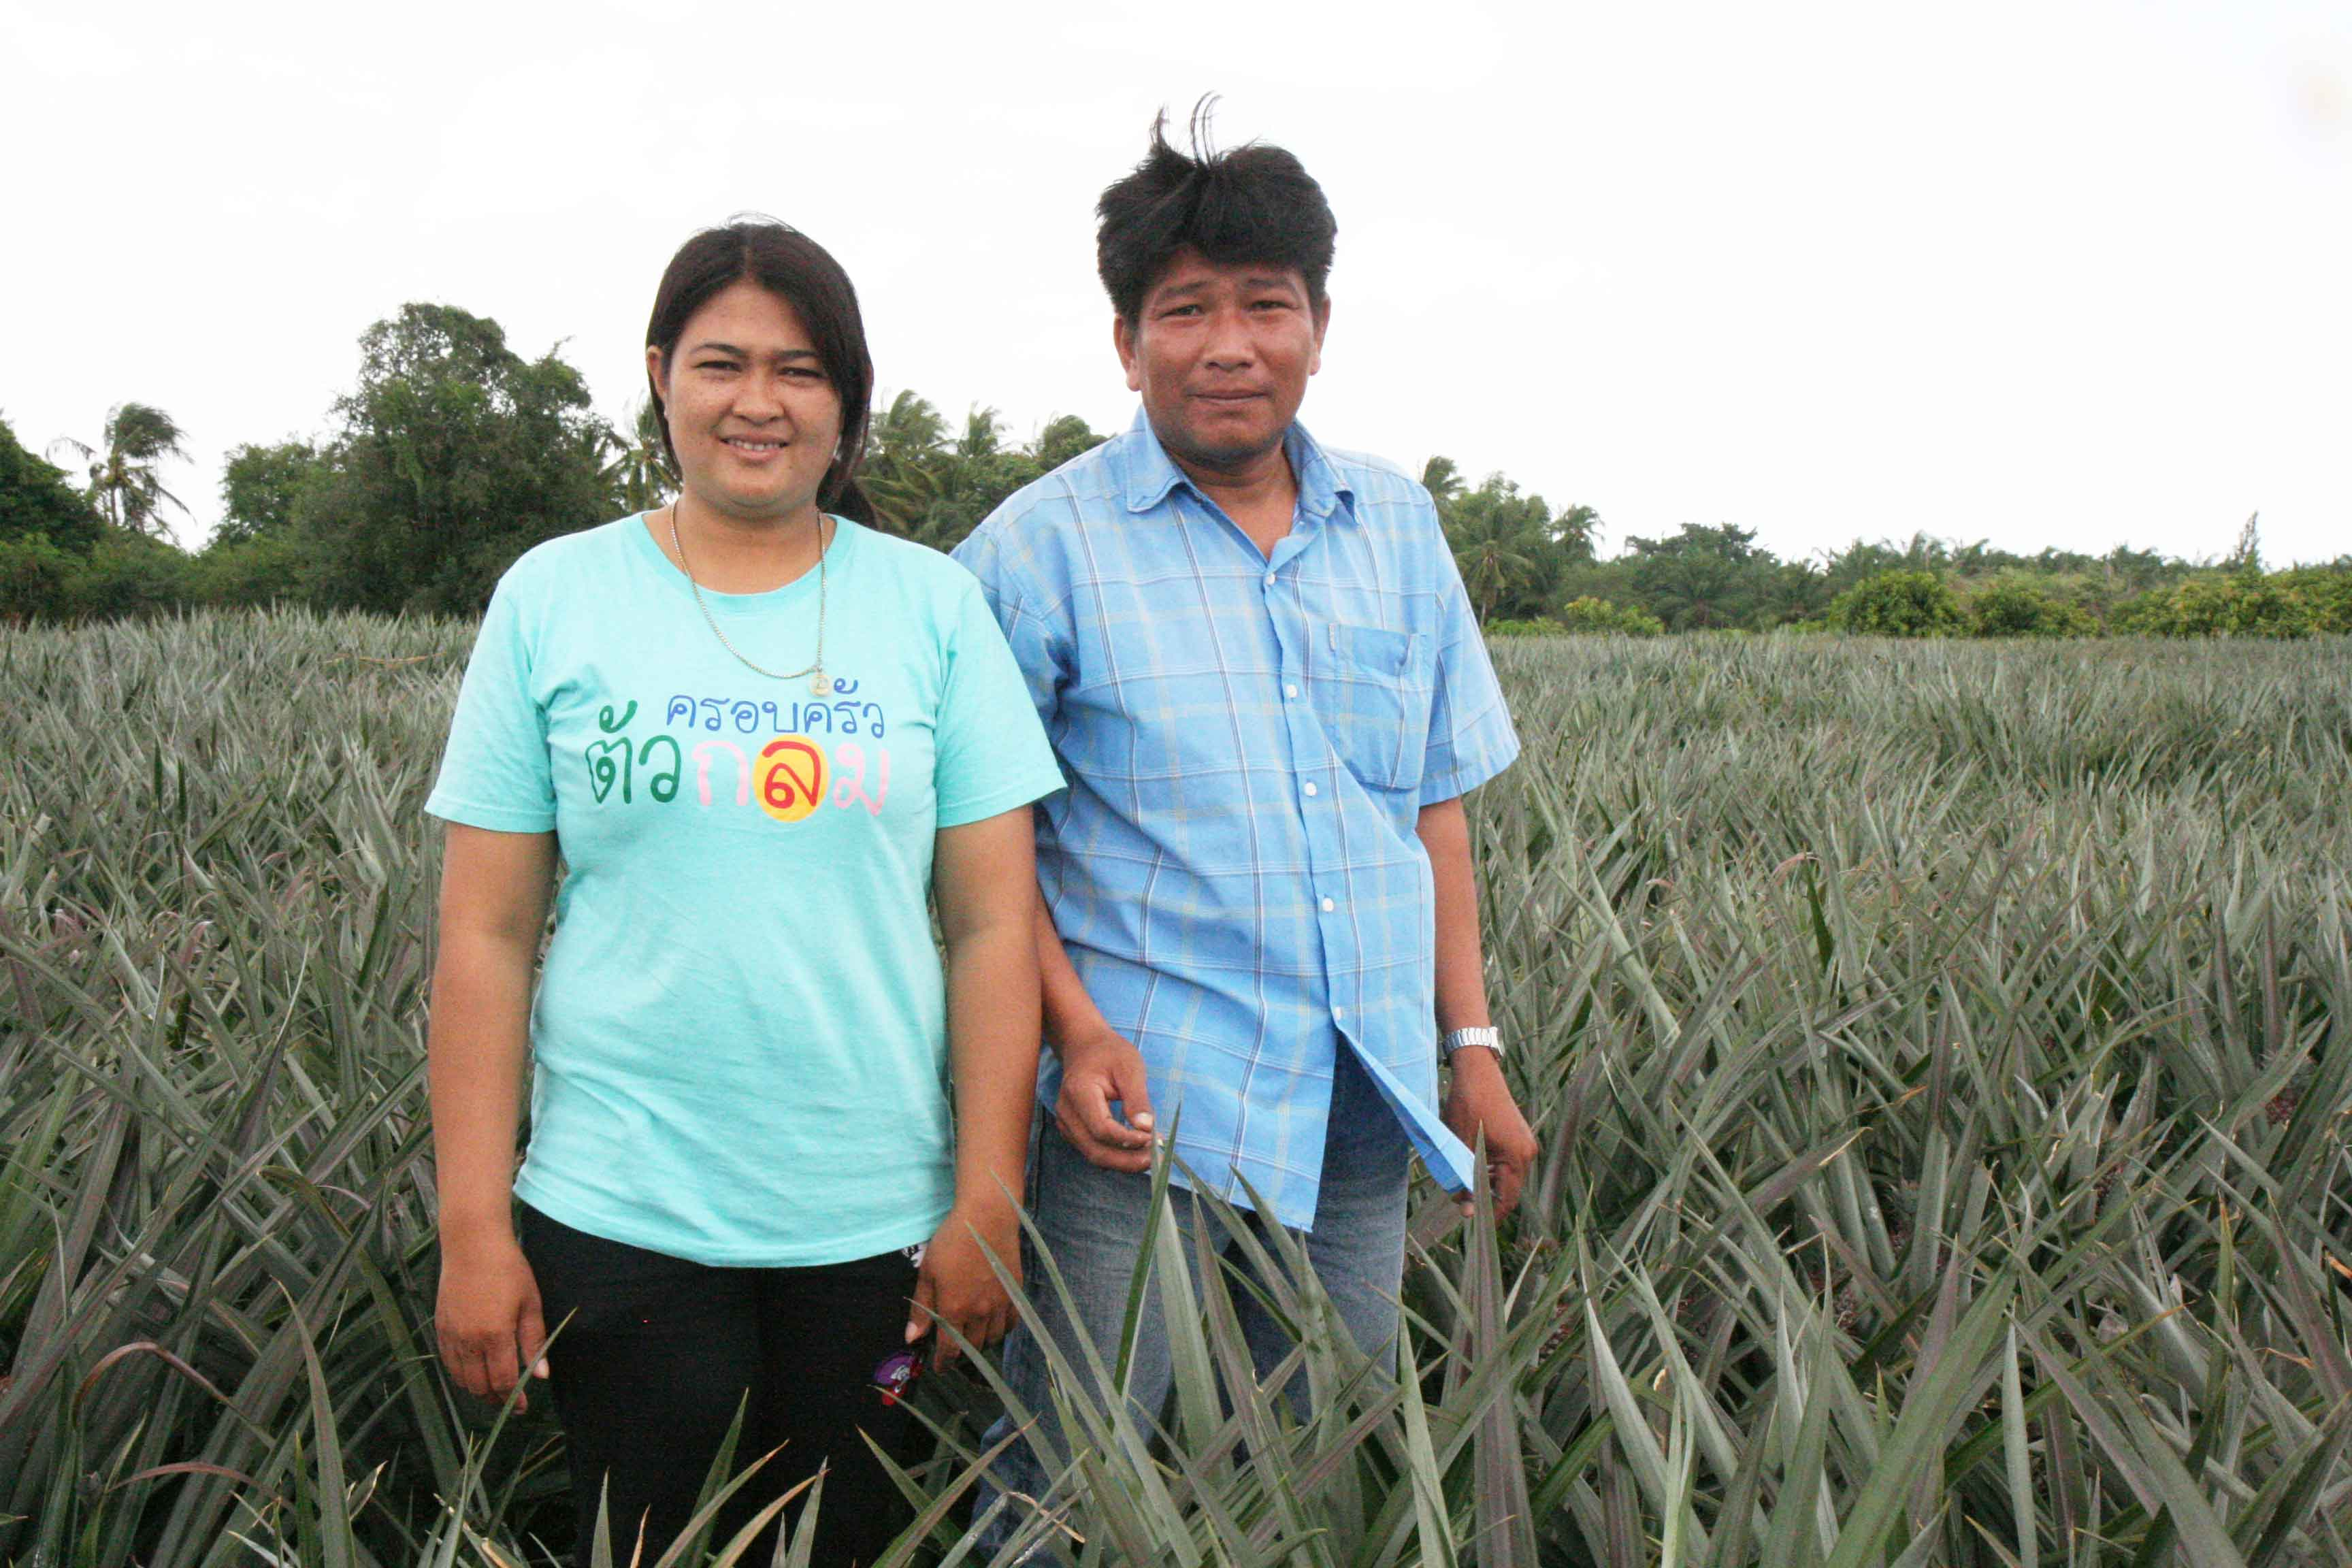 Mr. Amornthep Phummun (right) and his wife, Ms. Lookjieb Yimnoi, Pineapple Farmers in Kuiburi, Thailand